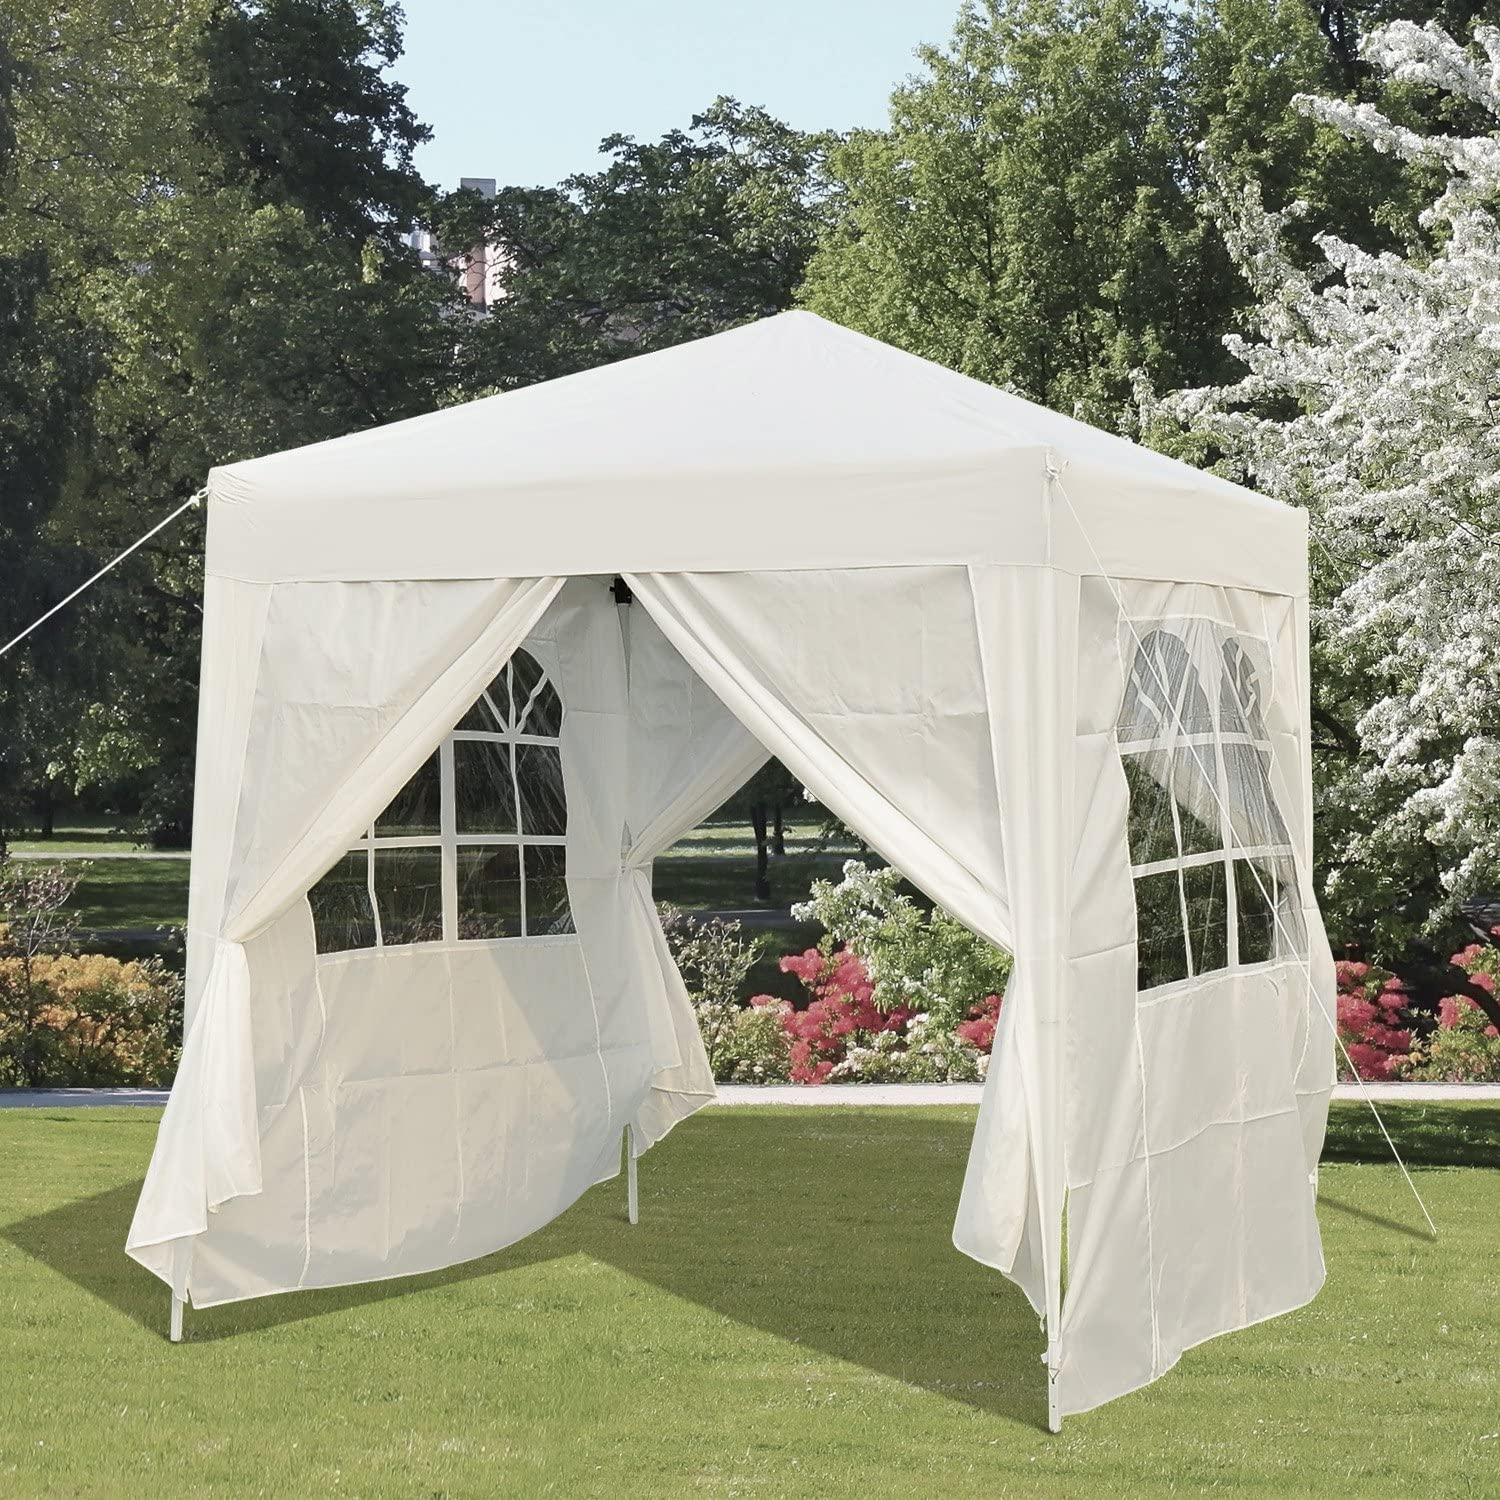 Outsunny 6.6x6.6ft Pop Up Party Tent Outdoor Folding Gazebo Canopy with Side Walls Black